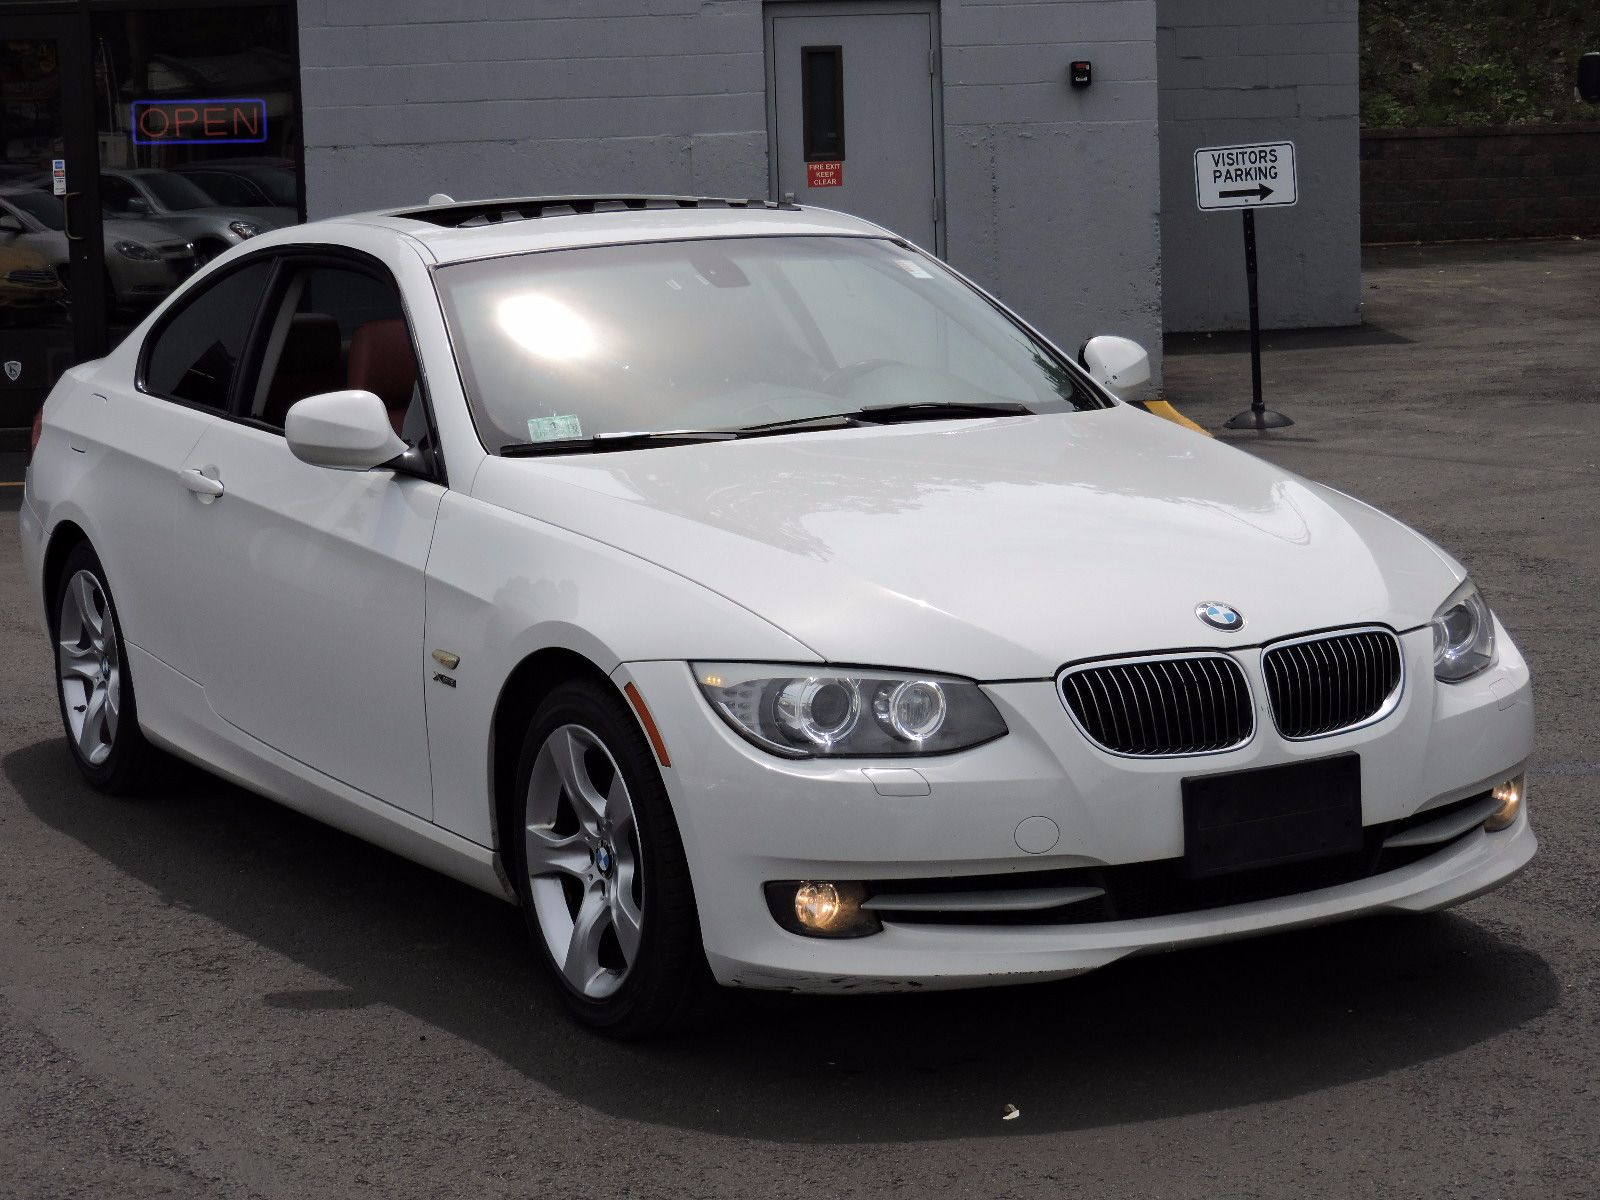 2011 BMW 328i xDrive - All Wheel Drive - Sport Package - Navigation